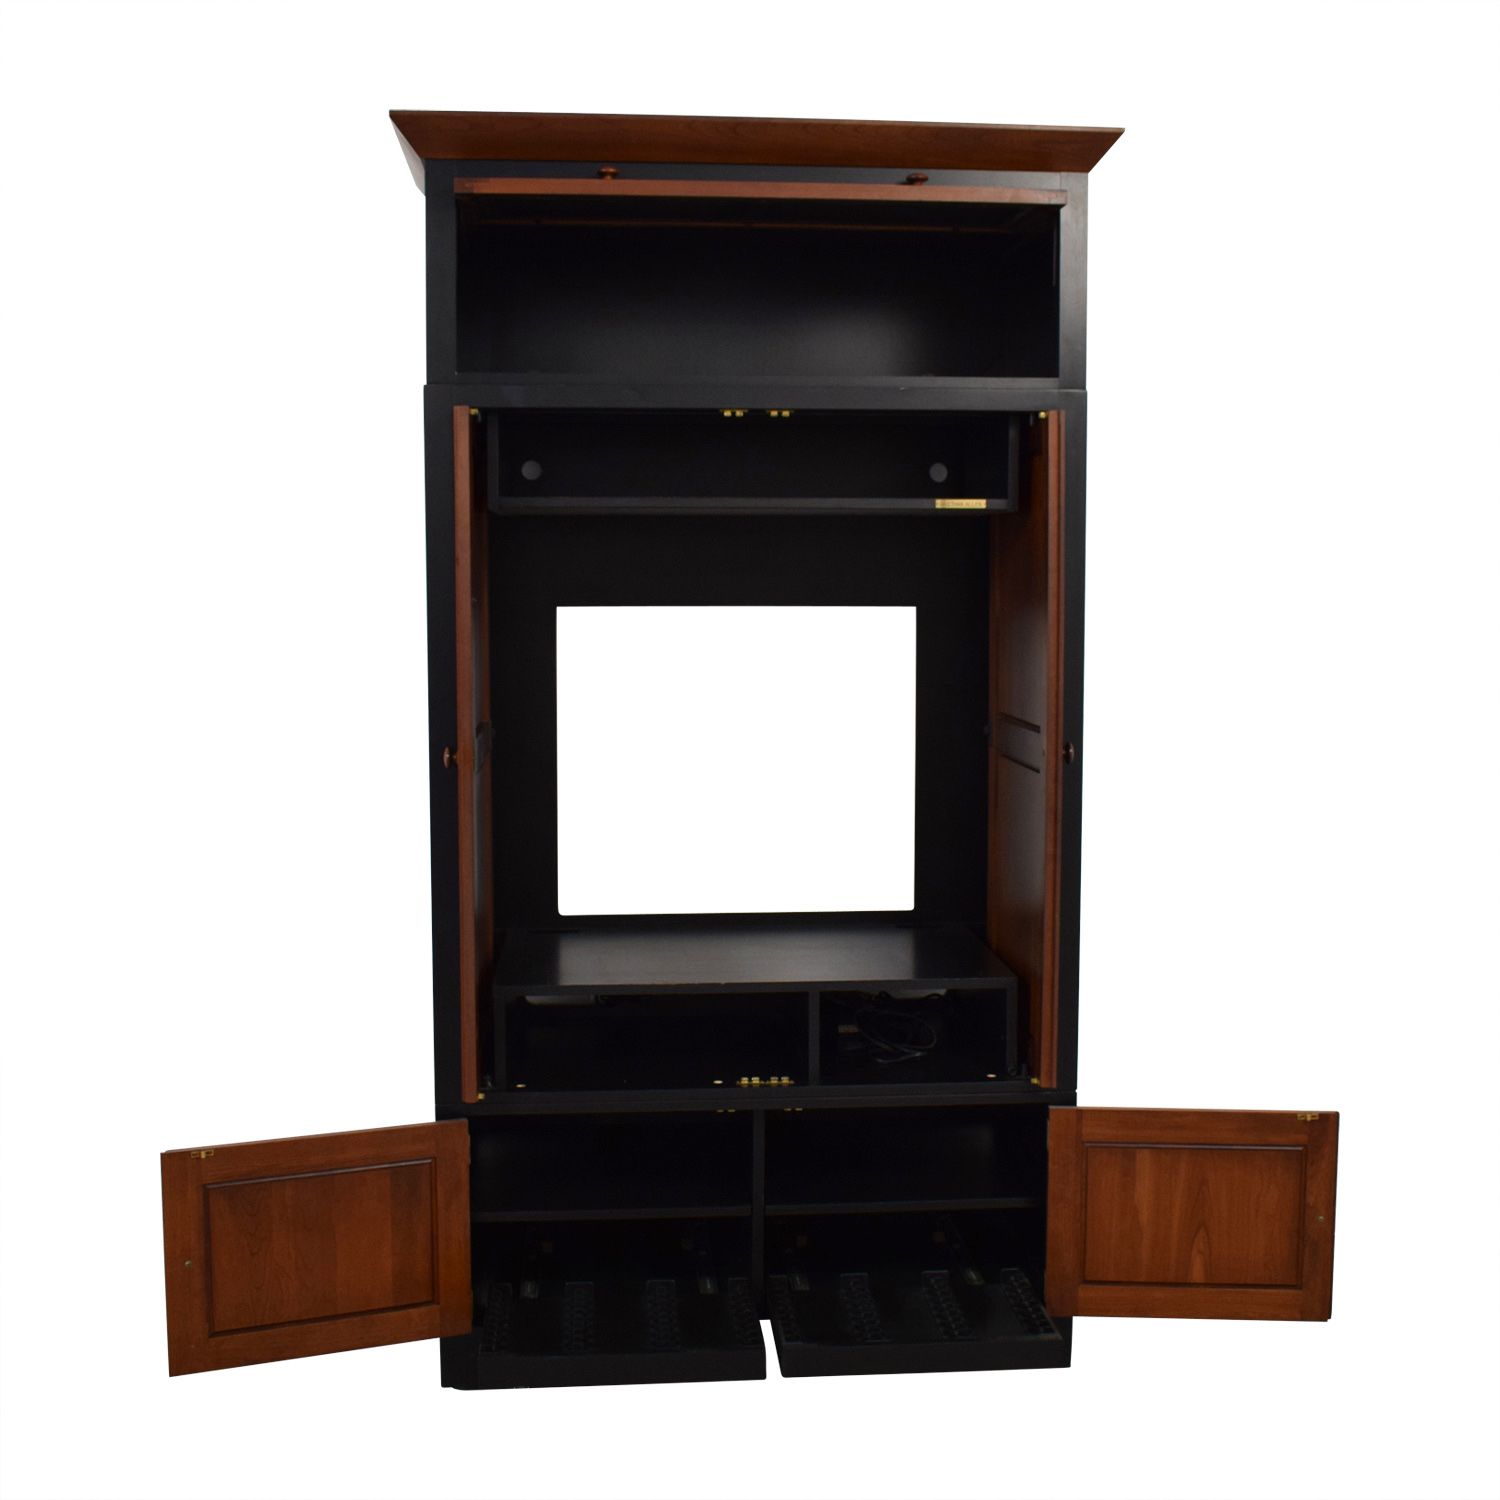 Ethan Allen Ethan Allen Wood Media Cabinet brown